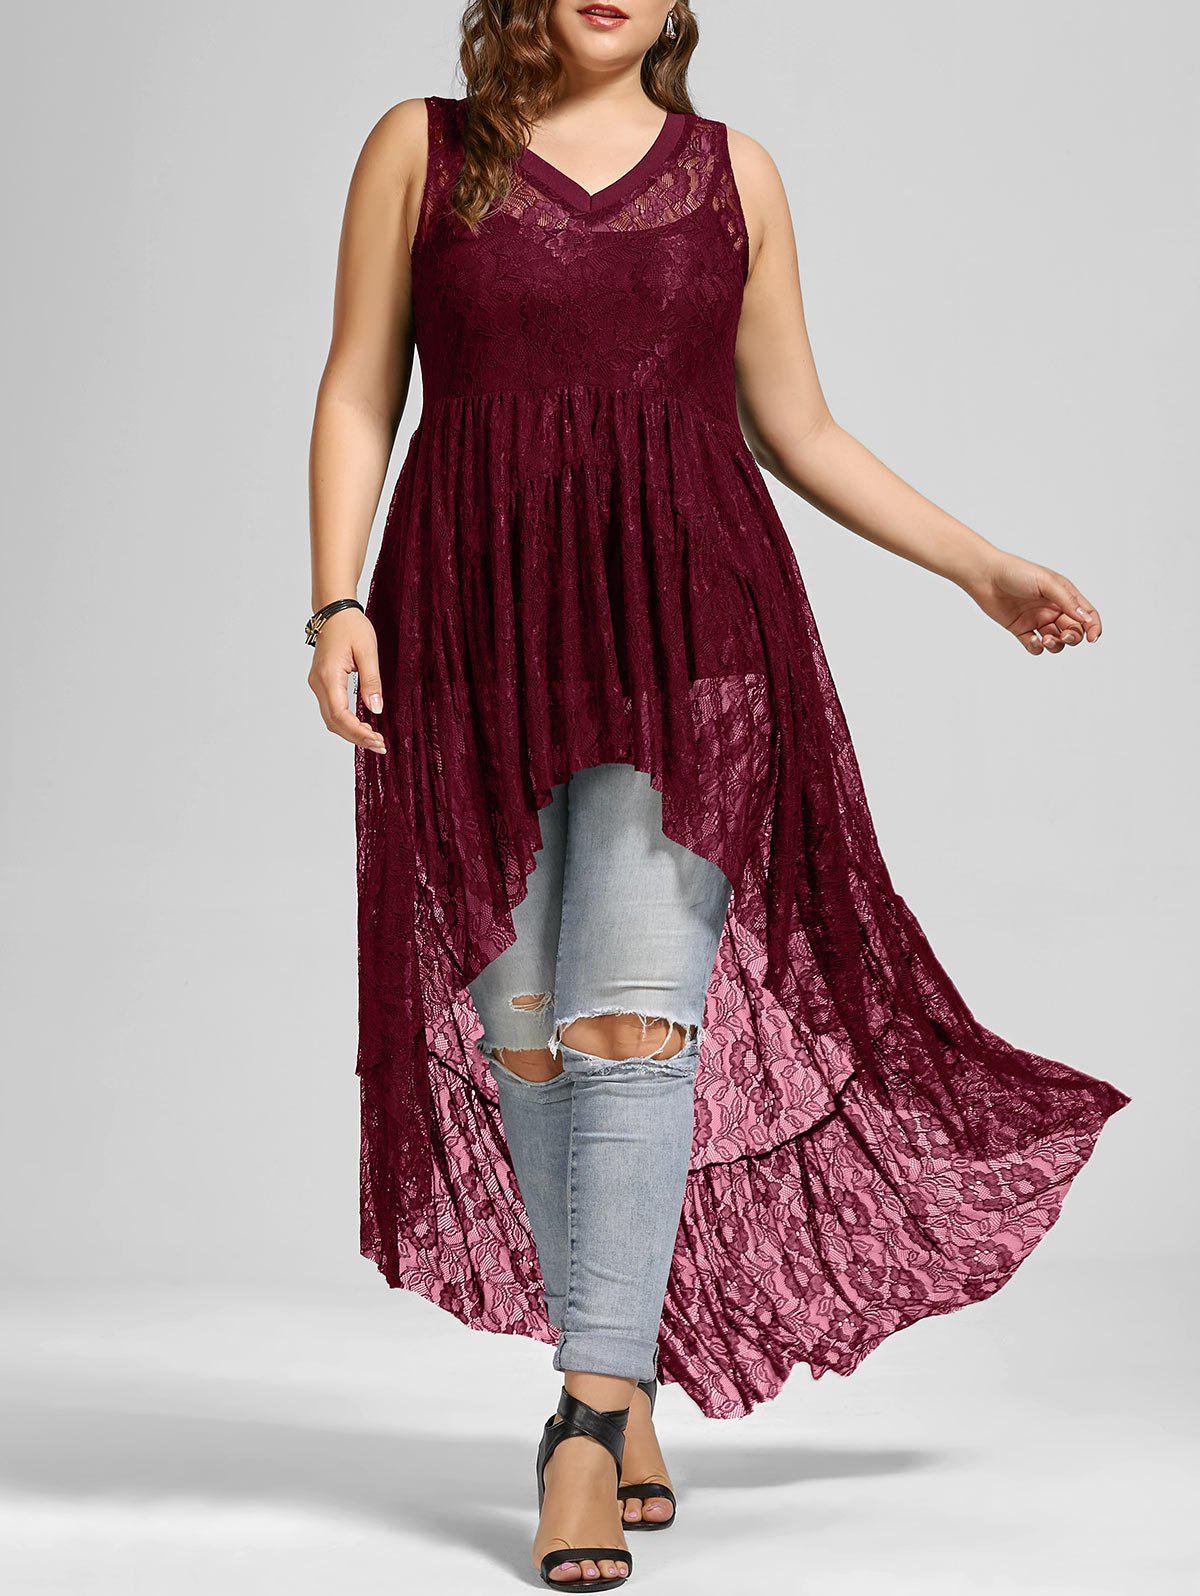 See Through Lace High Low Plus Size TopWOMEN<br><br>Size: 2XL; Color: WINE RED; Material: Polyester; Shirt Length: Long; Sleeve Length: Sleeveless; Collar: V-Neck; Style: Fashion; Season: Summer; Pattern Type: Solid; Weight: 0.3300kg; Package Contents: 1 x Top;